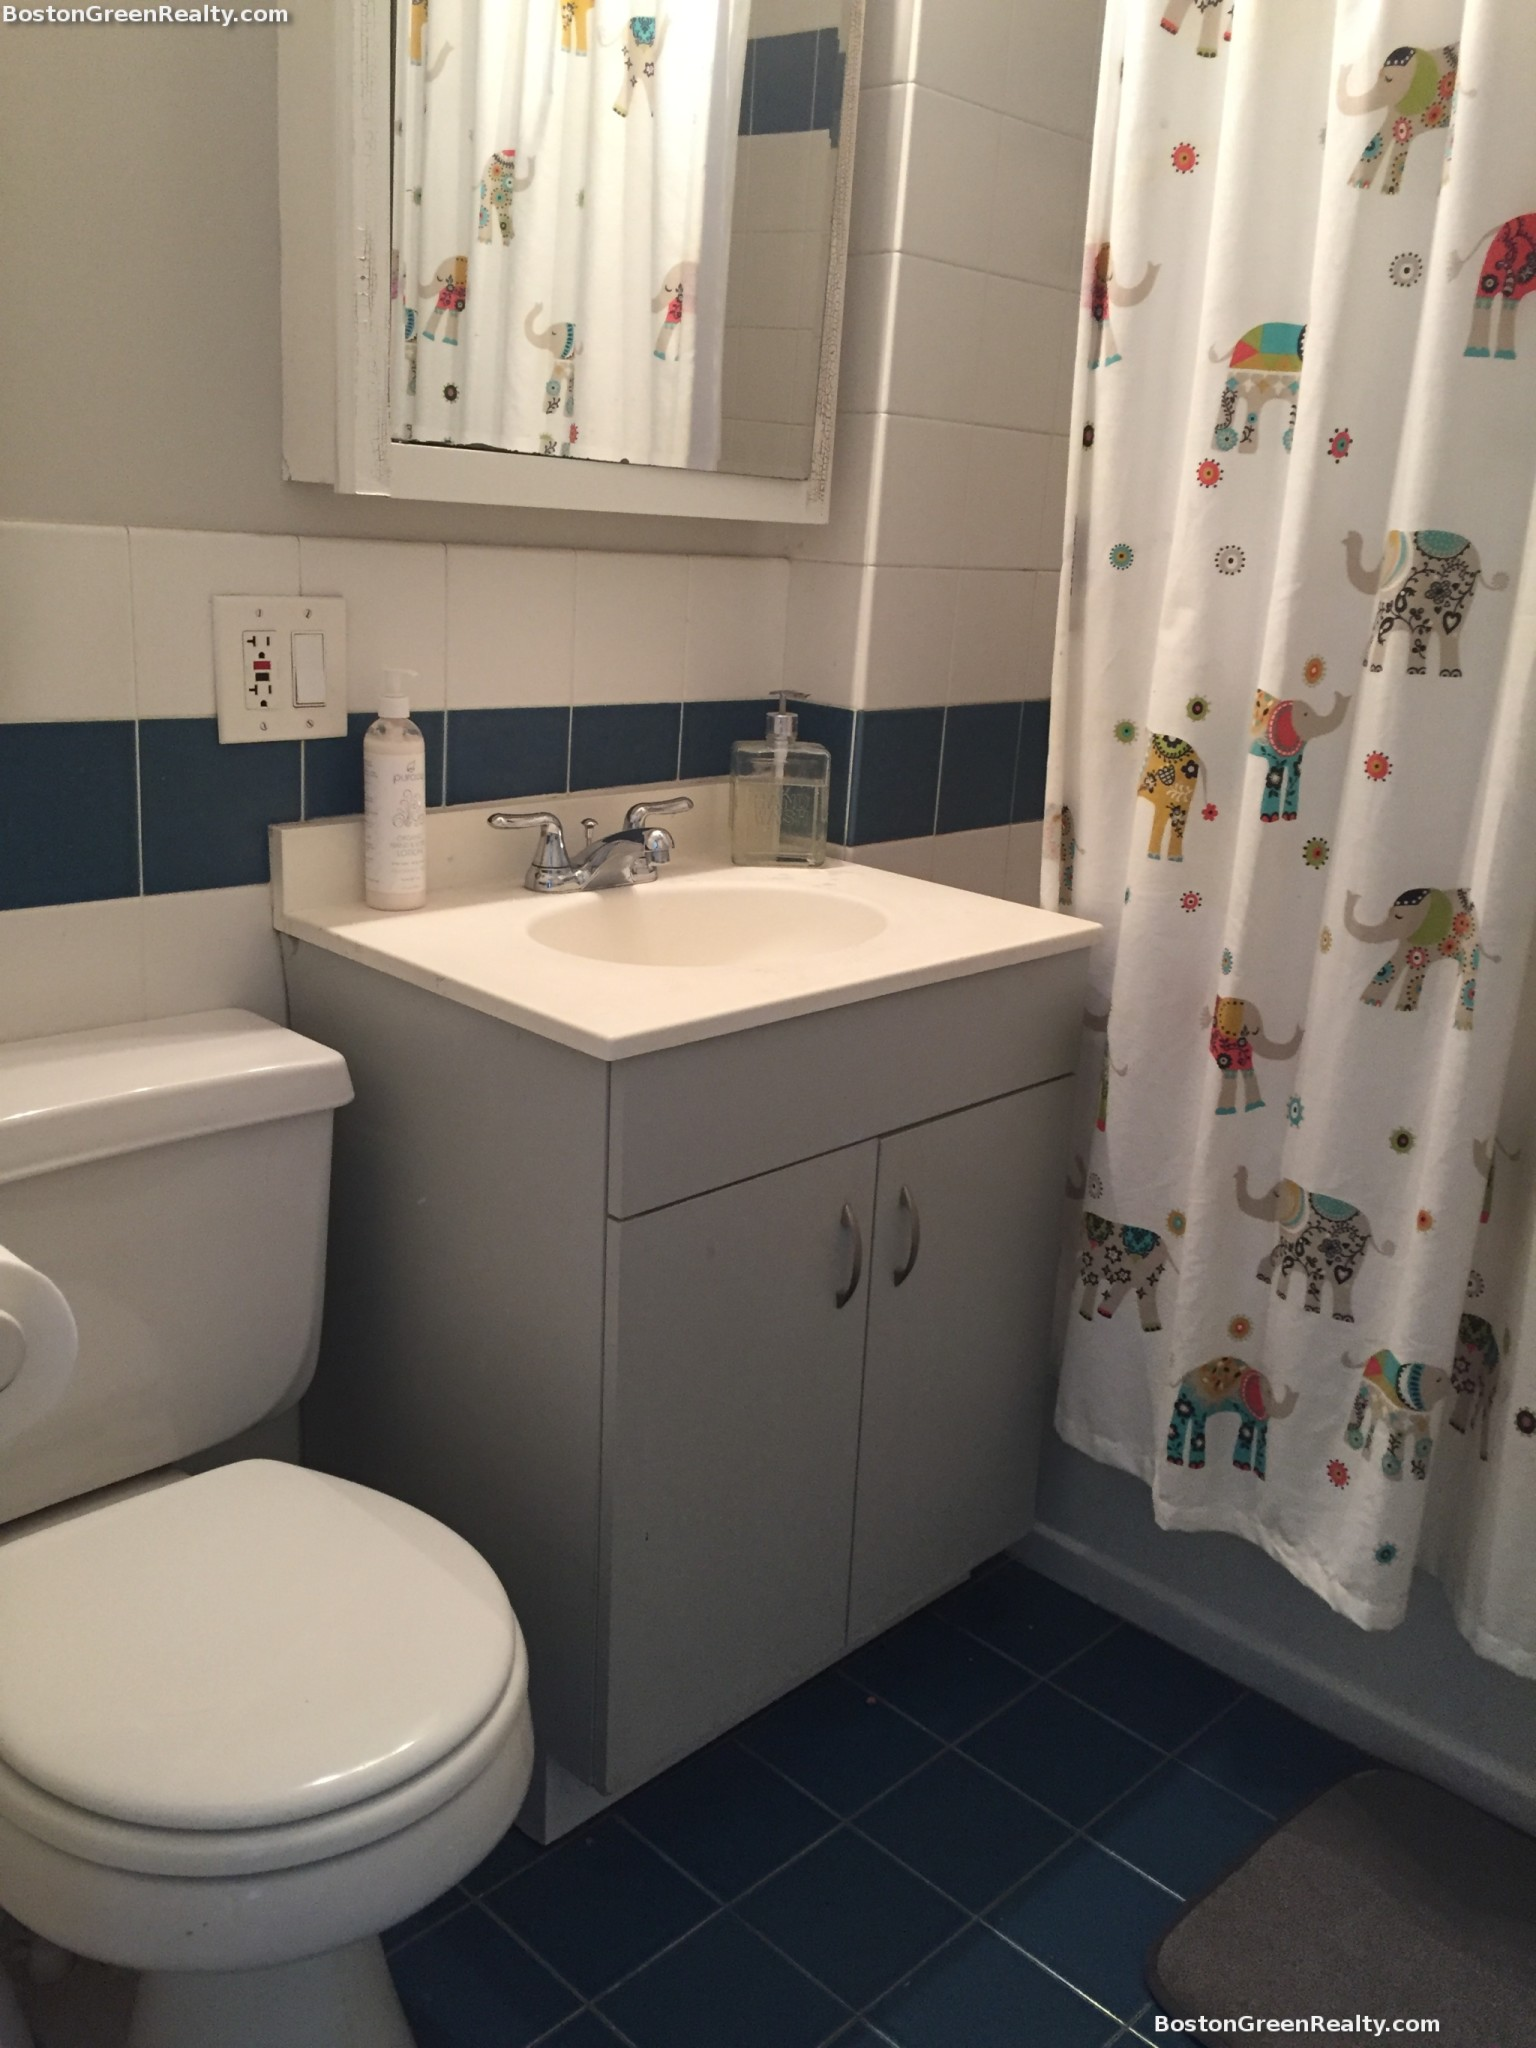 2 Beds, 1 Bath apartment in Boston, Bay Village for $2,800